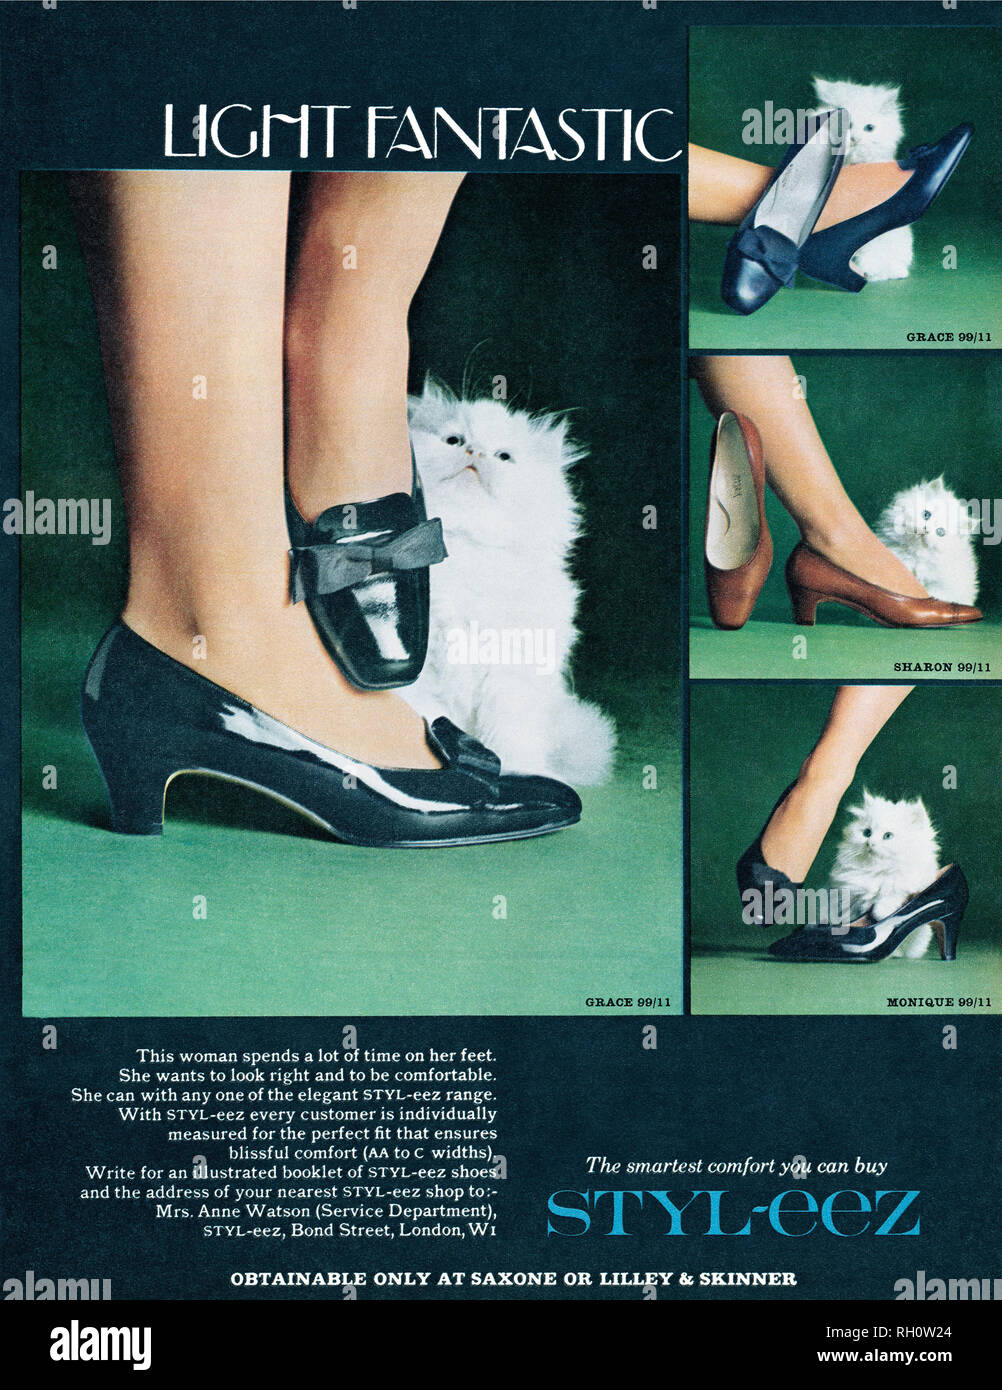 1968, British advertisement for Styl-Eez shoes. - Stock Image